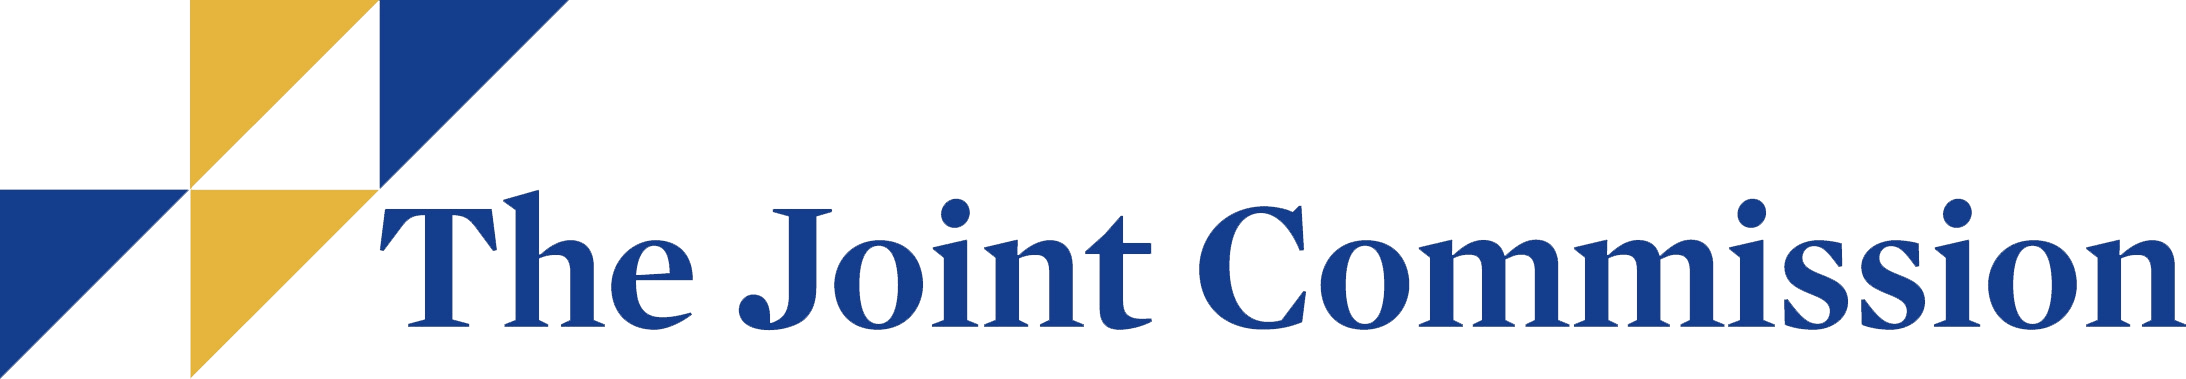 Joint Comm logo.png